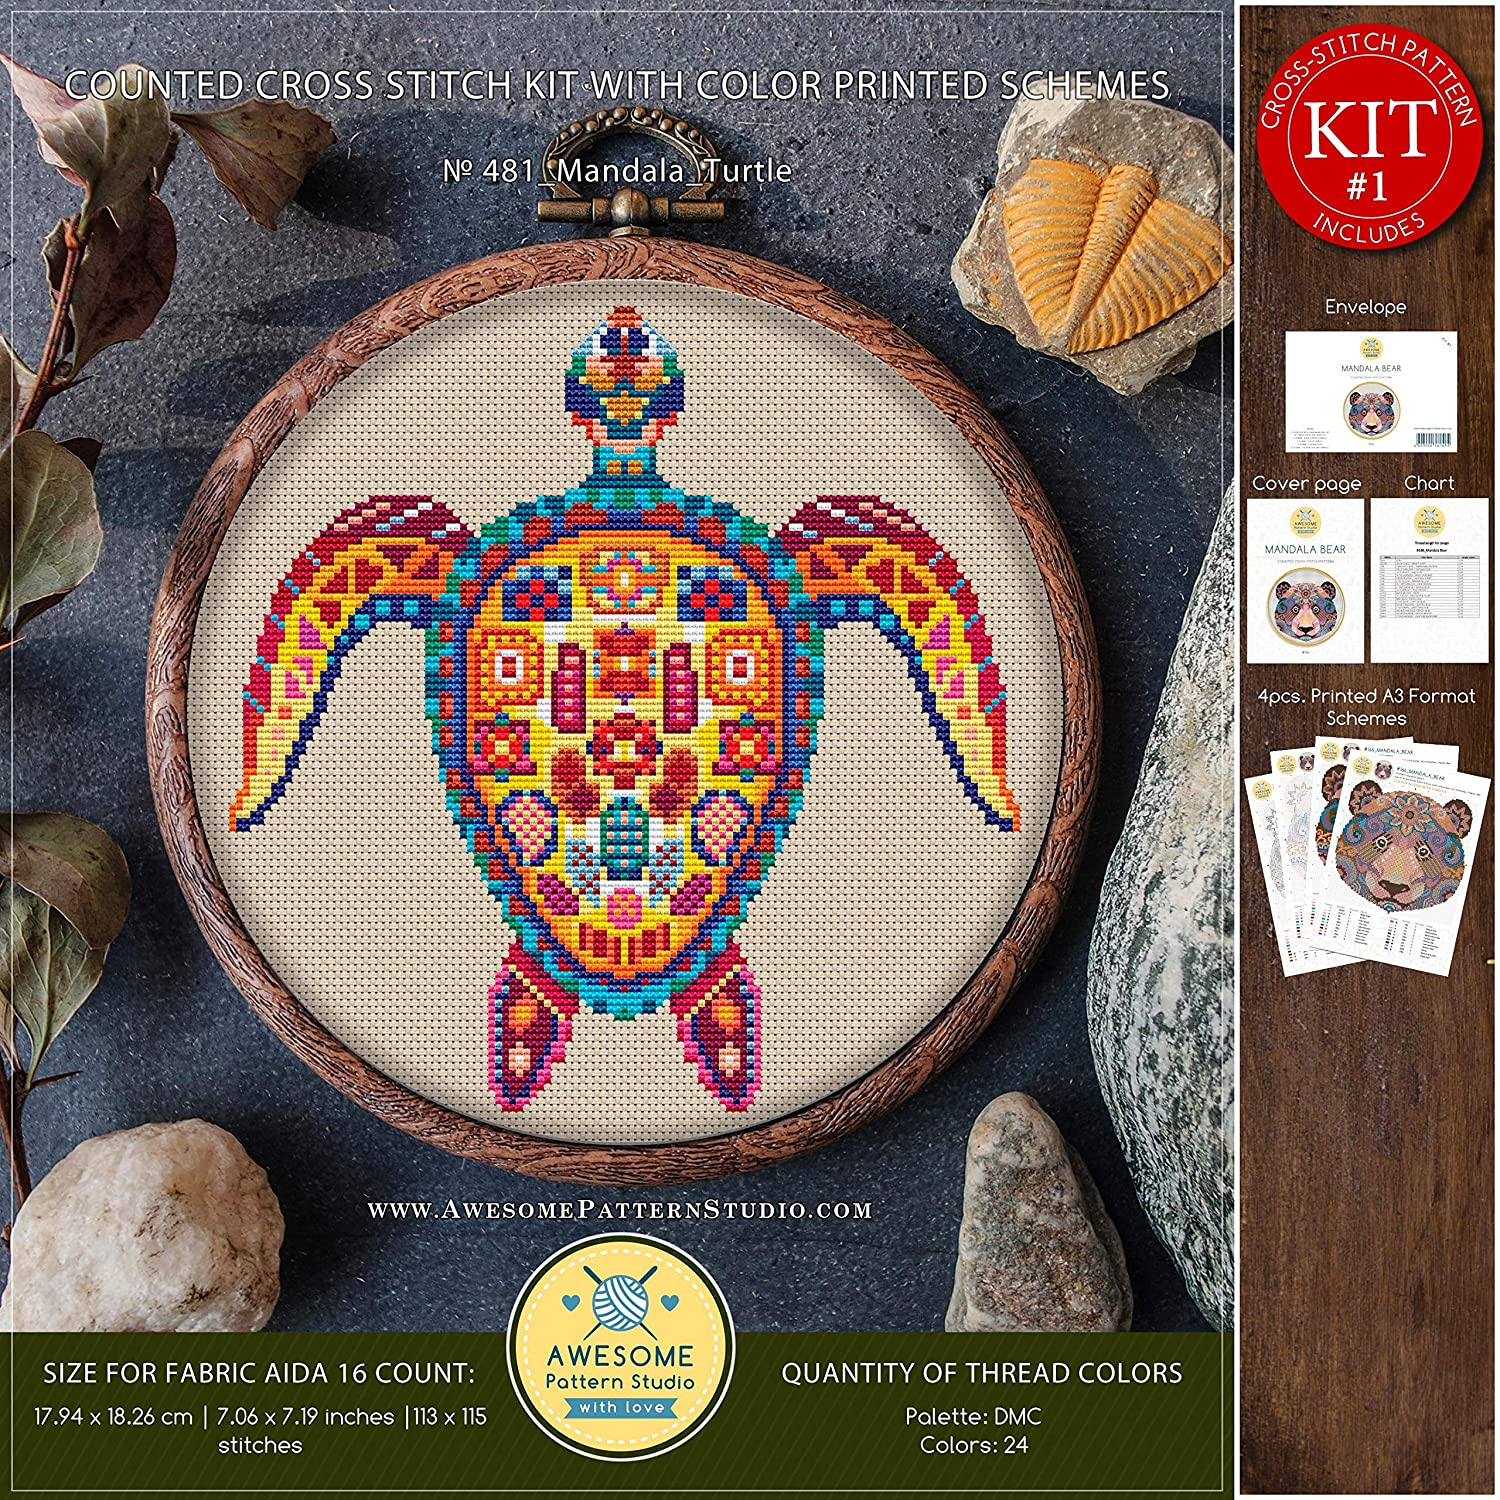 Cross Pattern How to Cross Stitch Funny Animals Cross Stitch Patterns Mandala Turtle #K481 Cross Stitch Embroidery Kit Needlepoint Kits